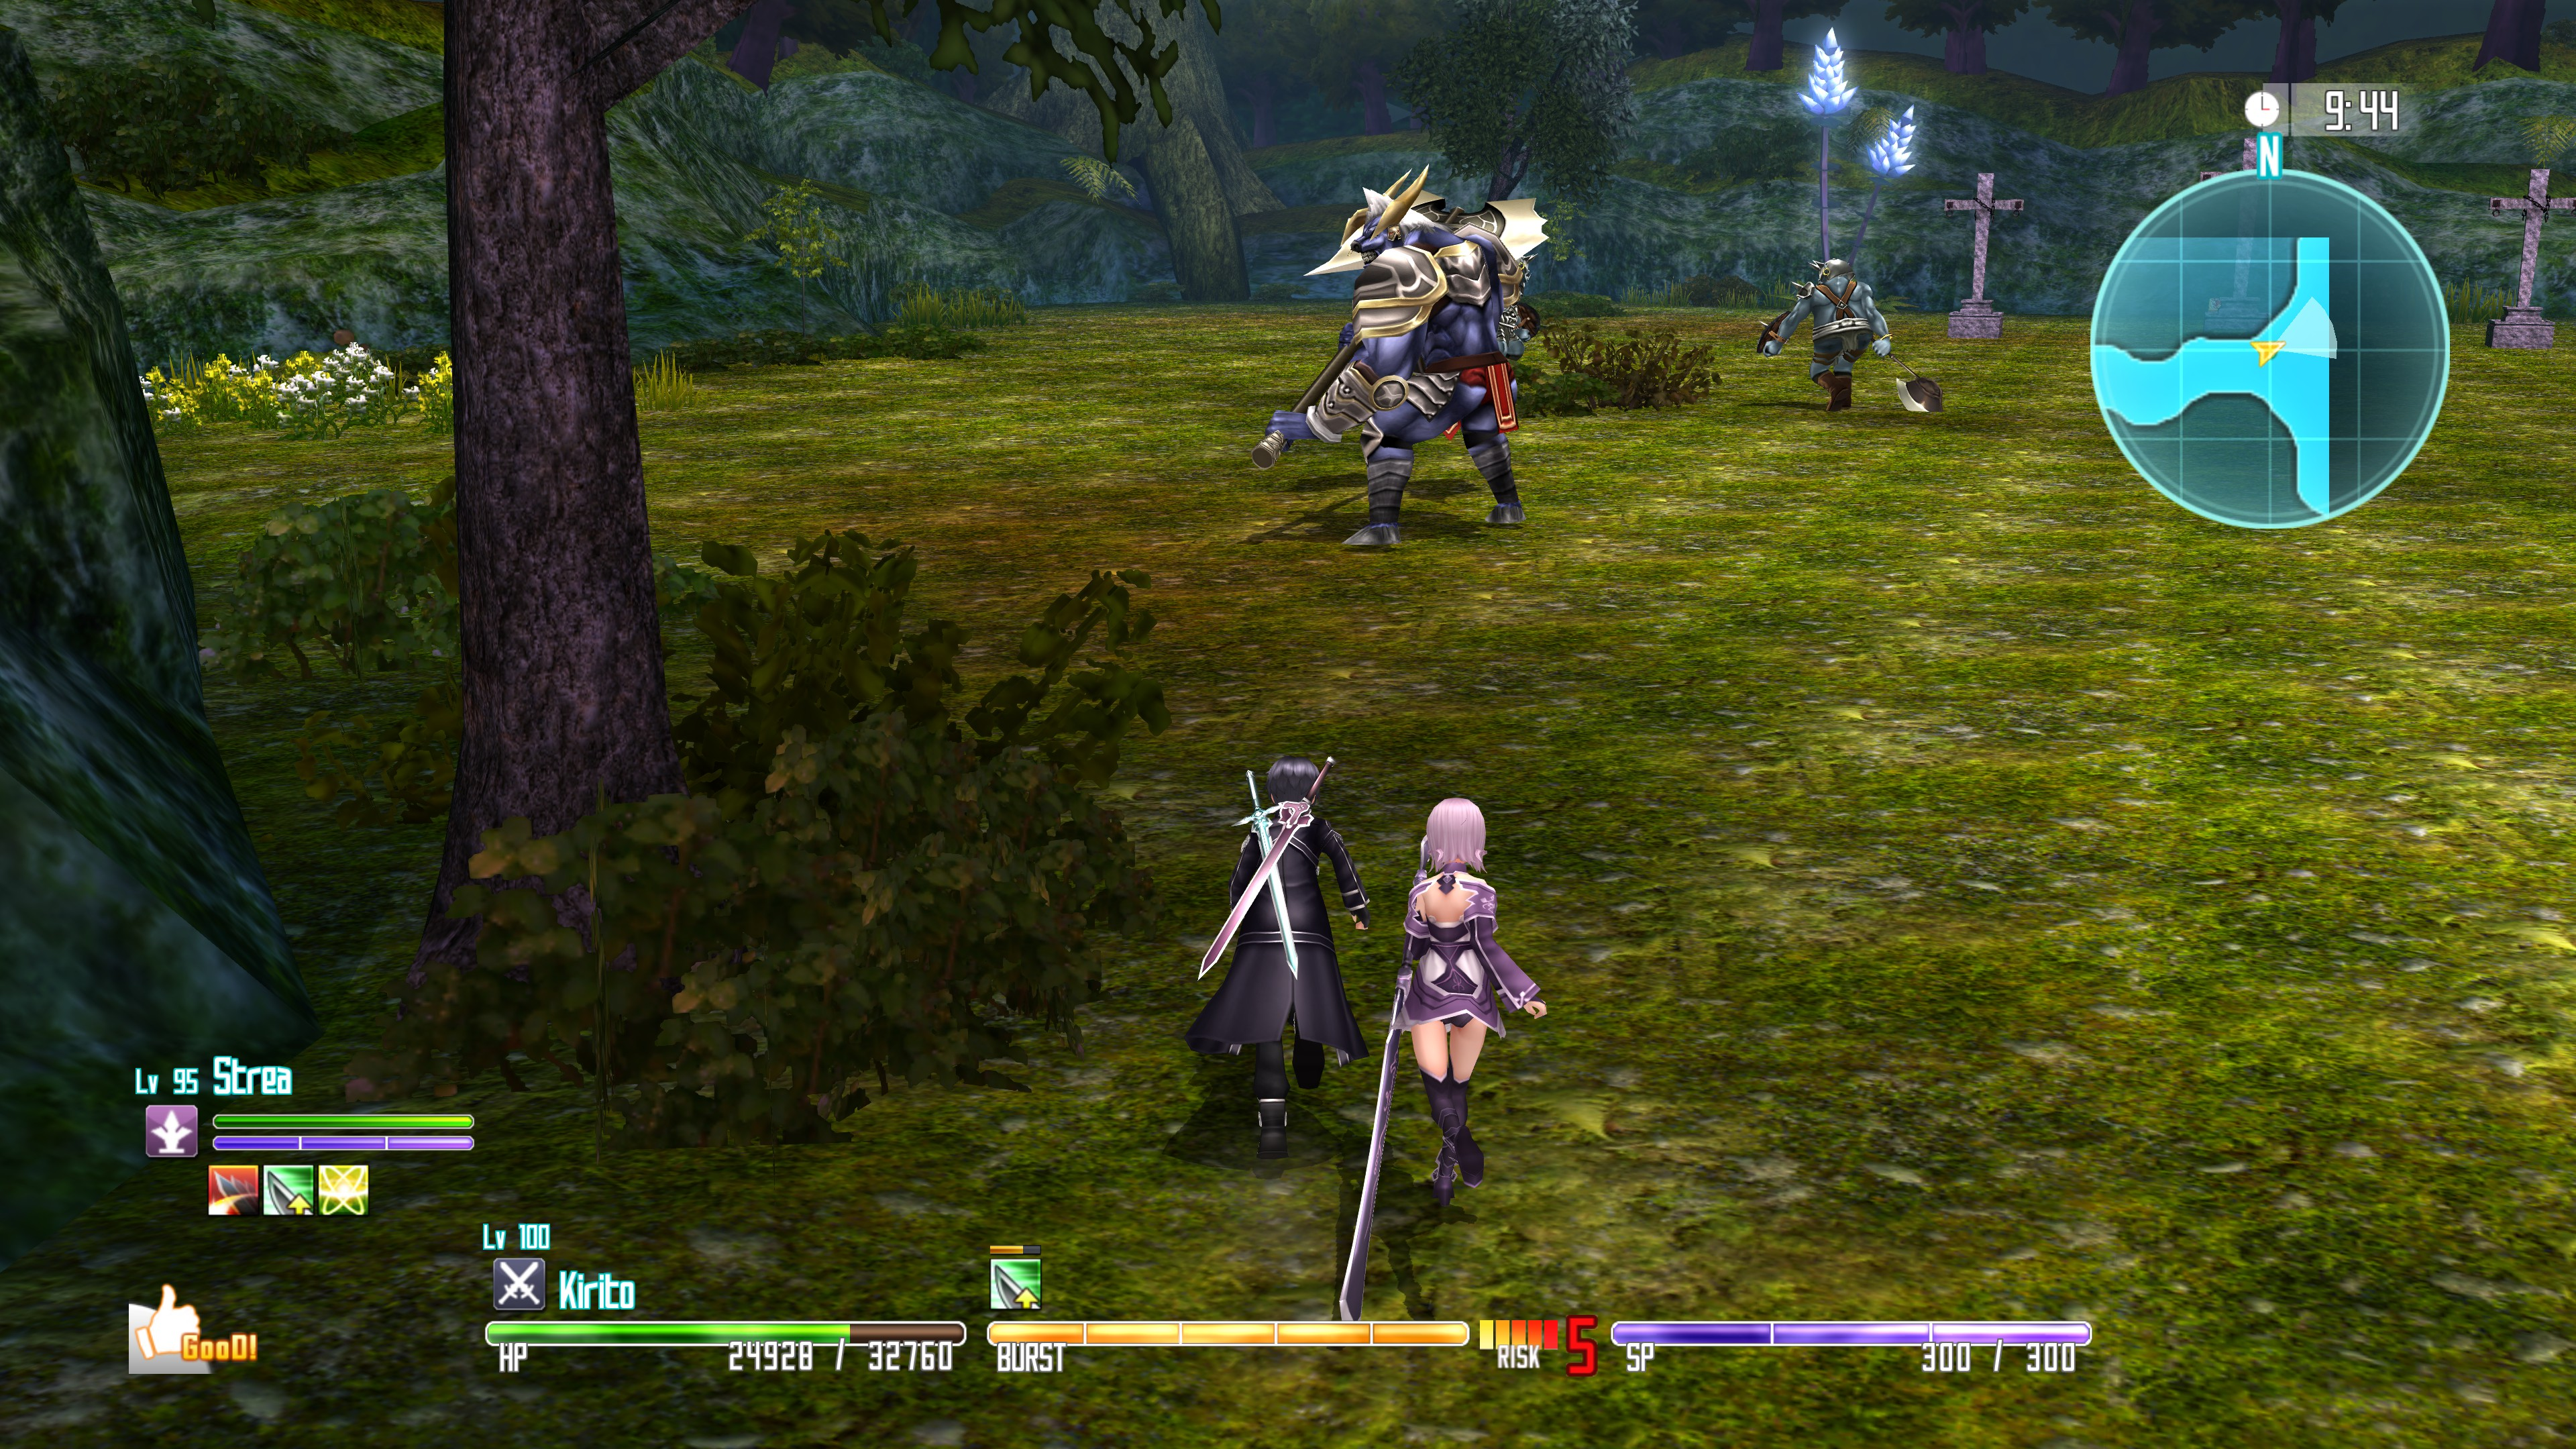 Sword Art Online Re: Hollow Fragment available on Steam on